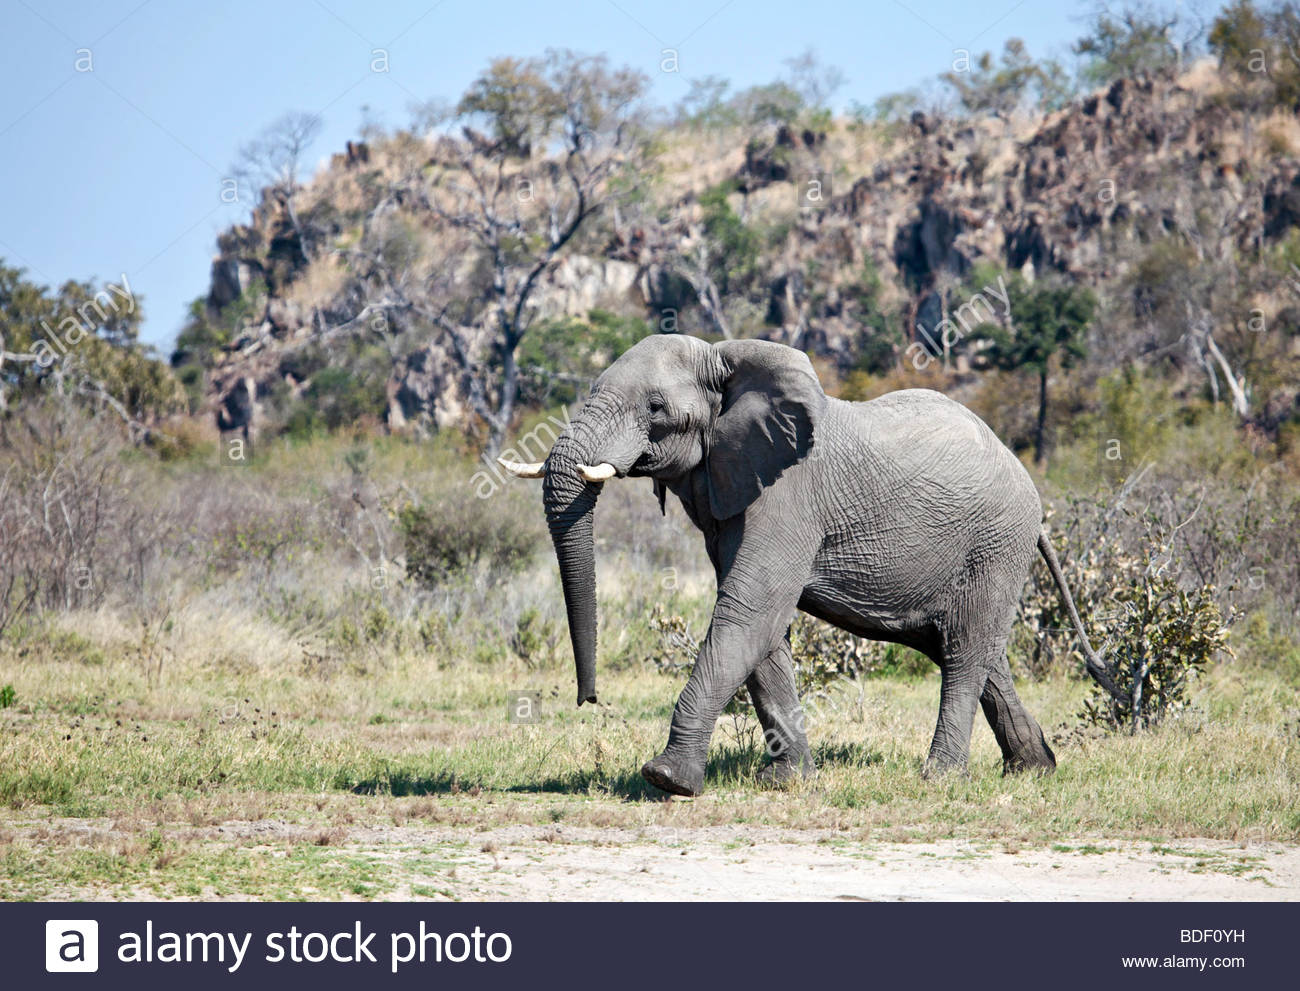 Male African Elephant walking in front of a kopje in the Savute/Savuti area of Chobe National Park in northern Botswana - Stock Image